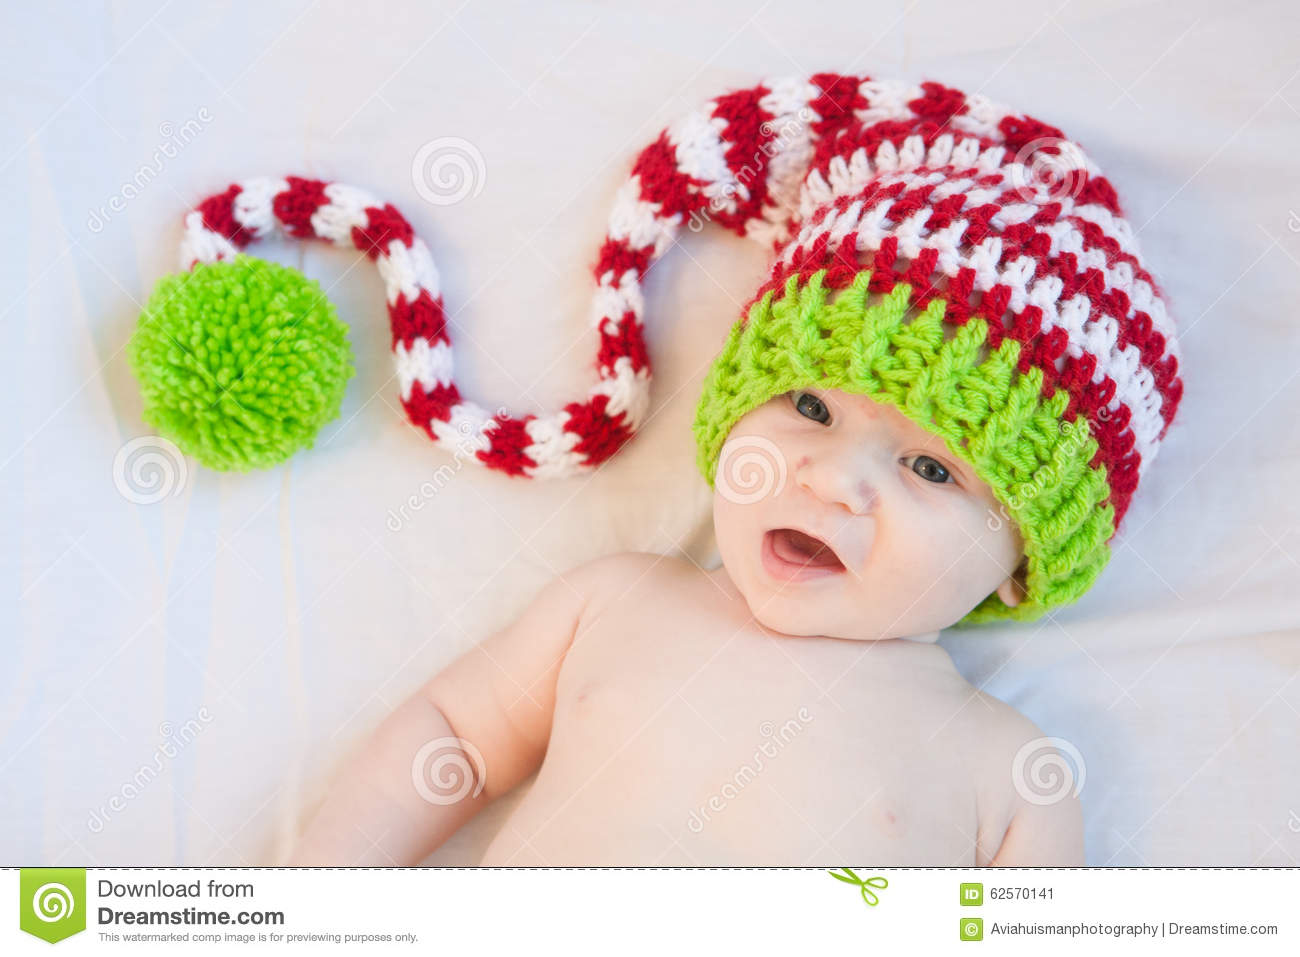 558e7e26f74 Baby wearing red white and green striped knit hat.